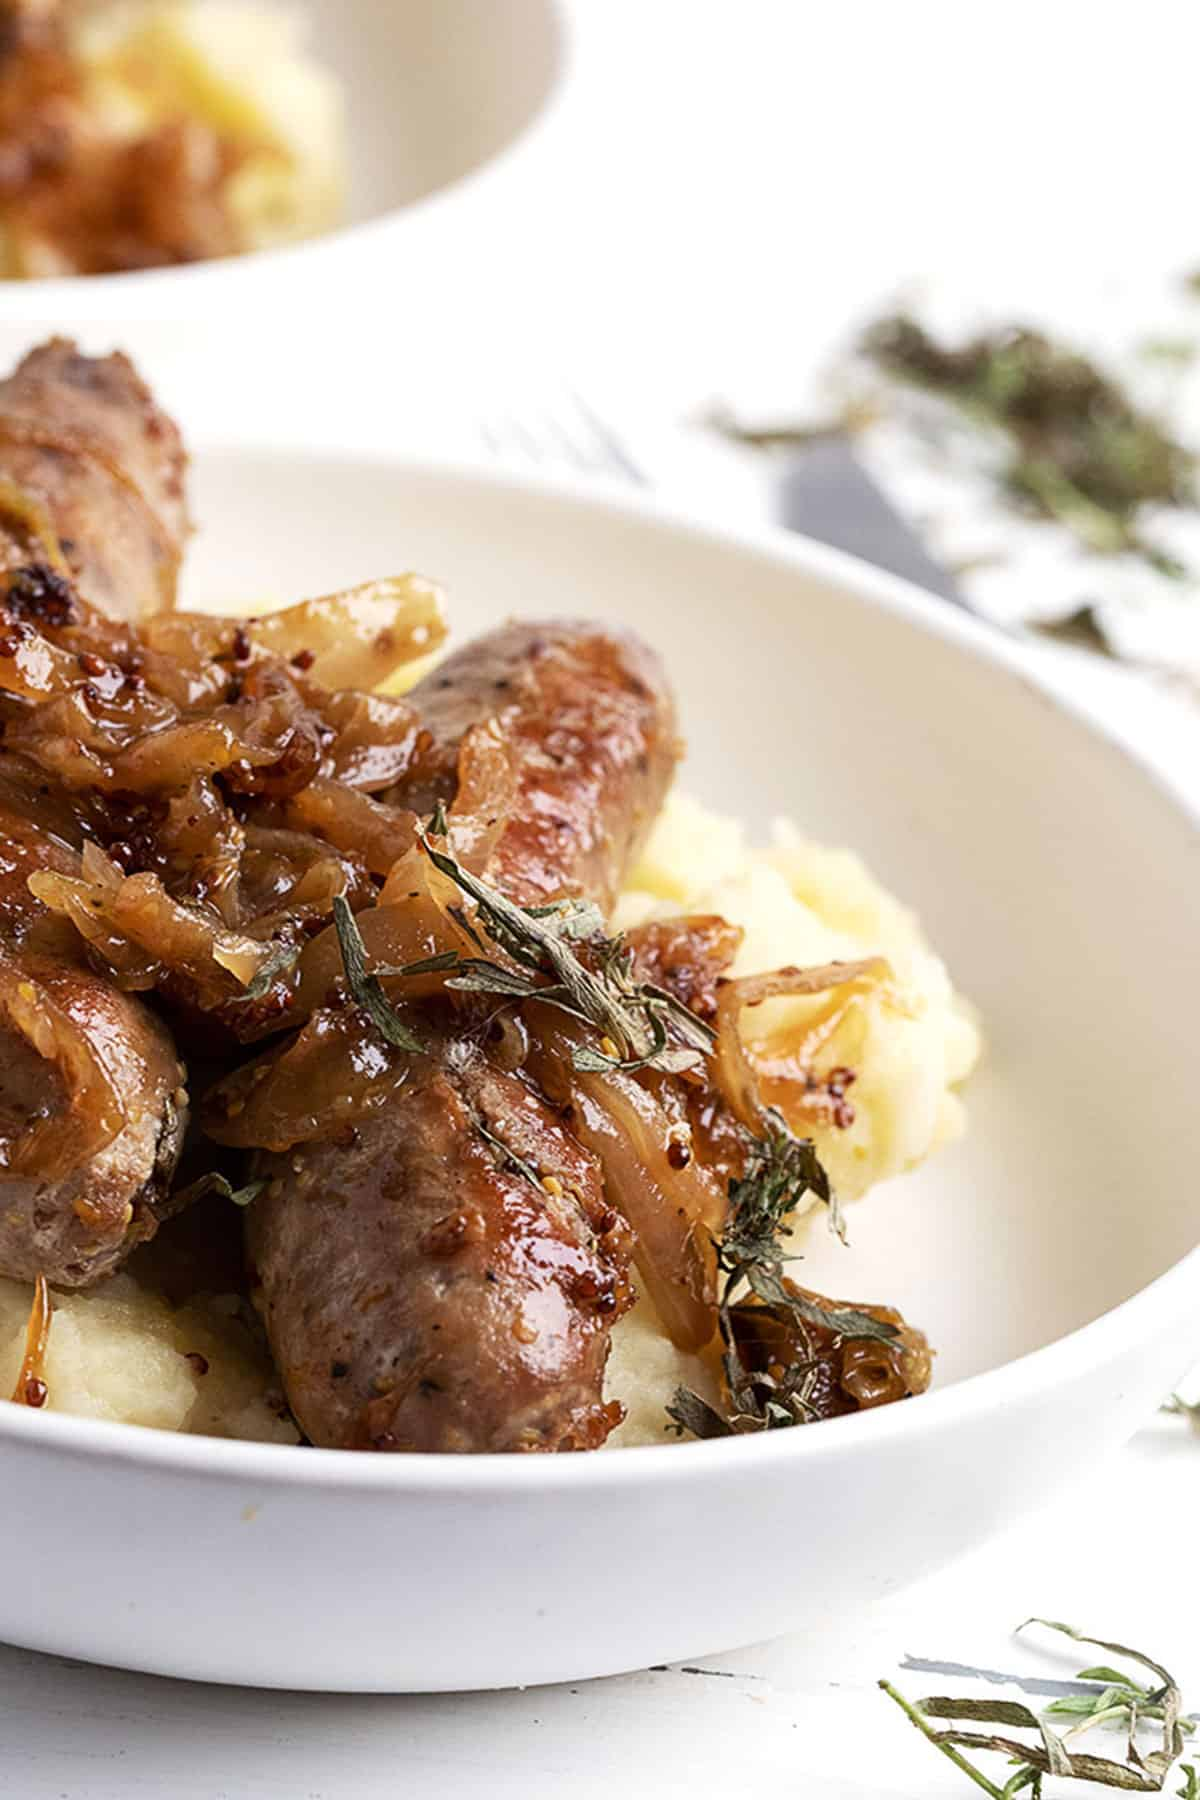 pork sausage in bowl with onions and mashed potatoes